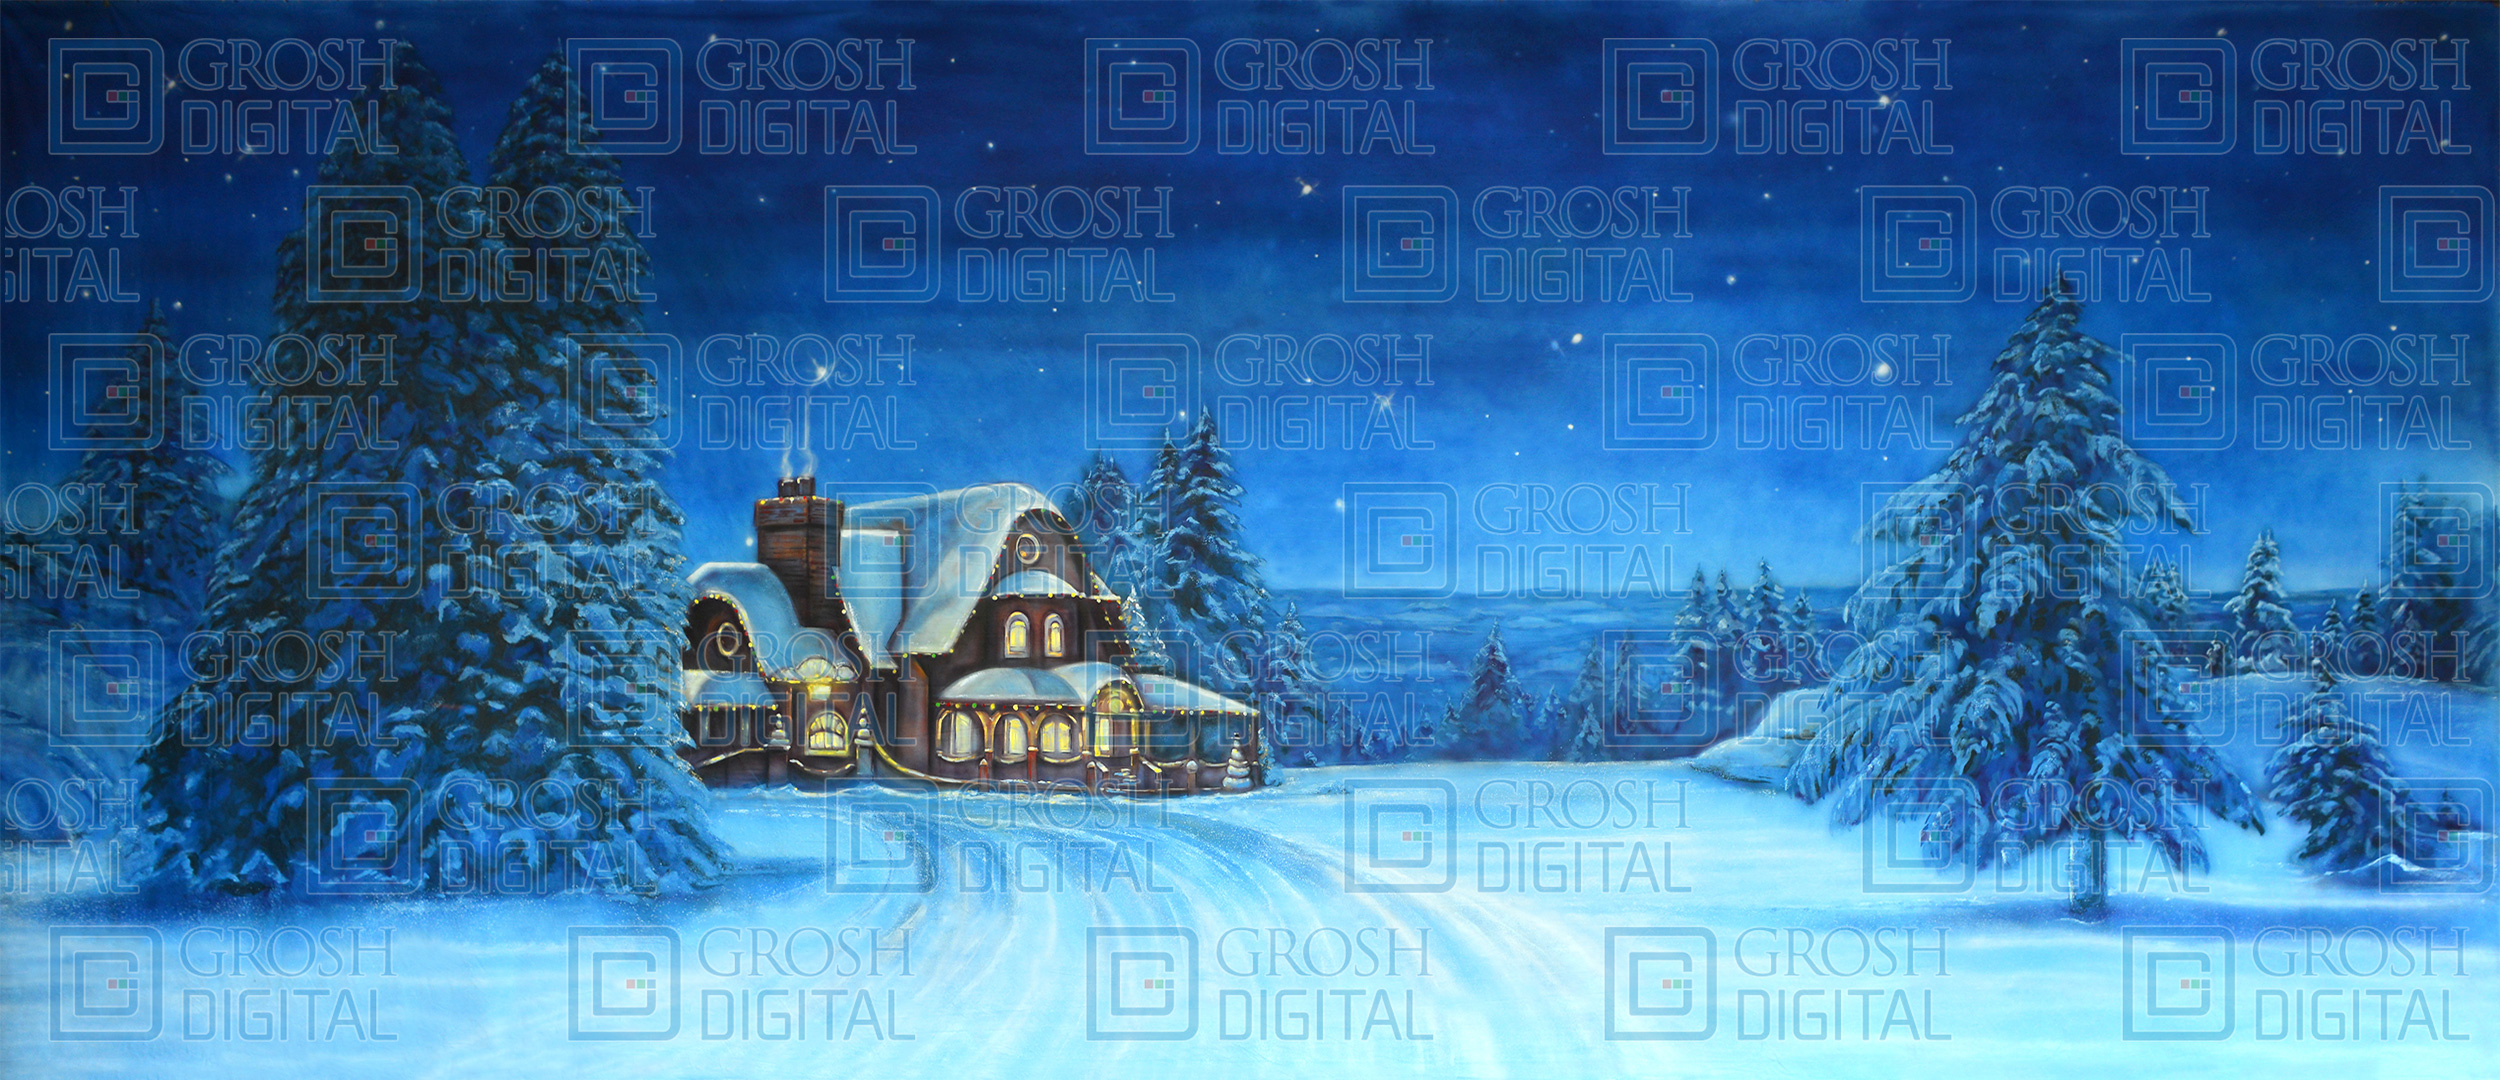 North Pole Projected Backdrop for Elf the Musical, Holiday, Snows, Villages